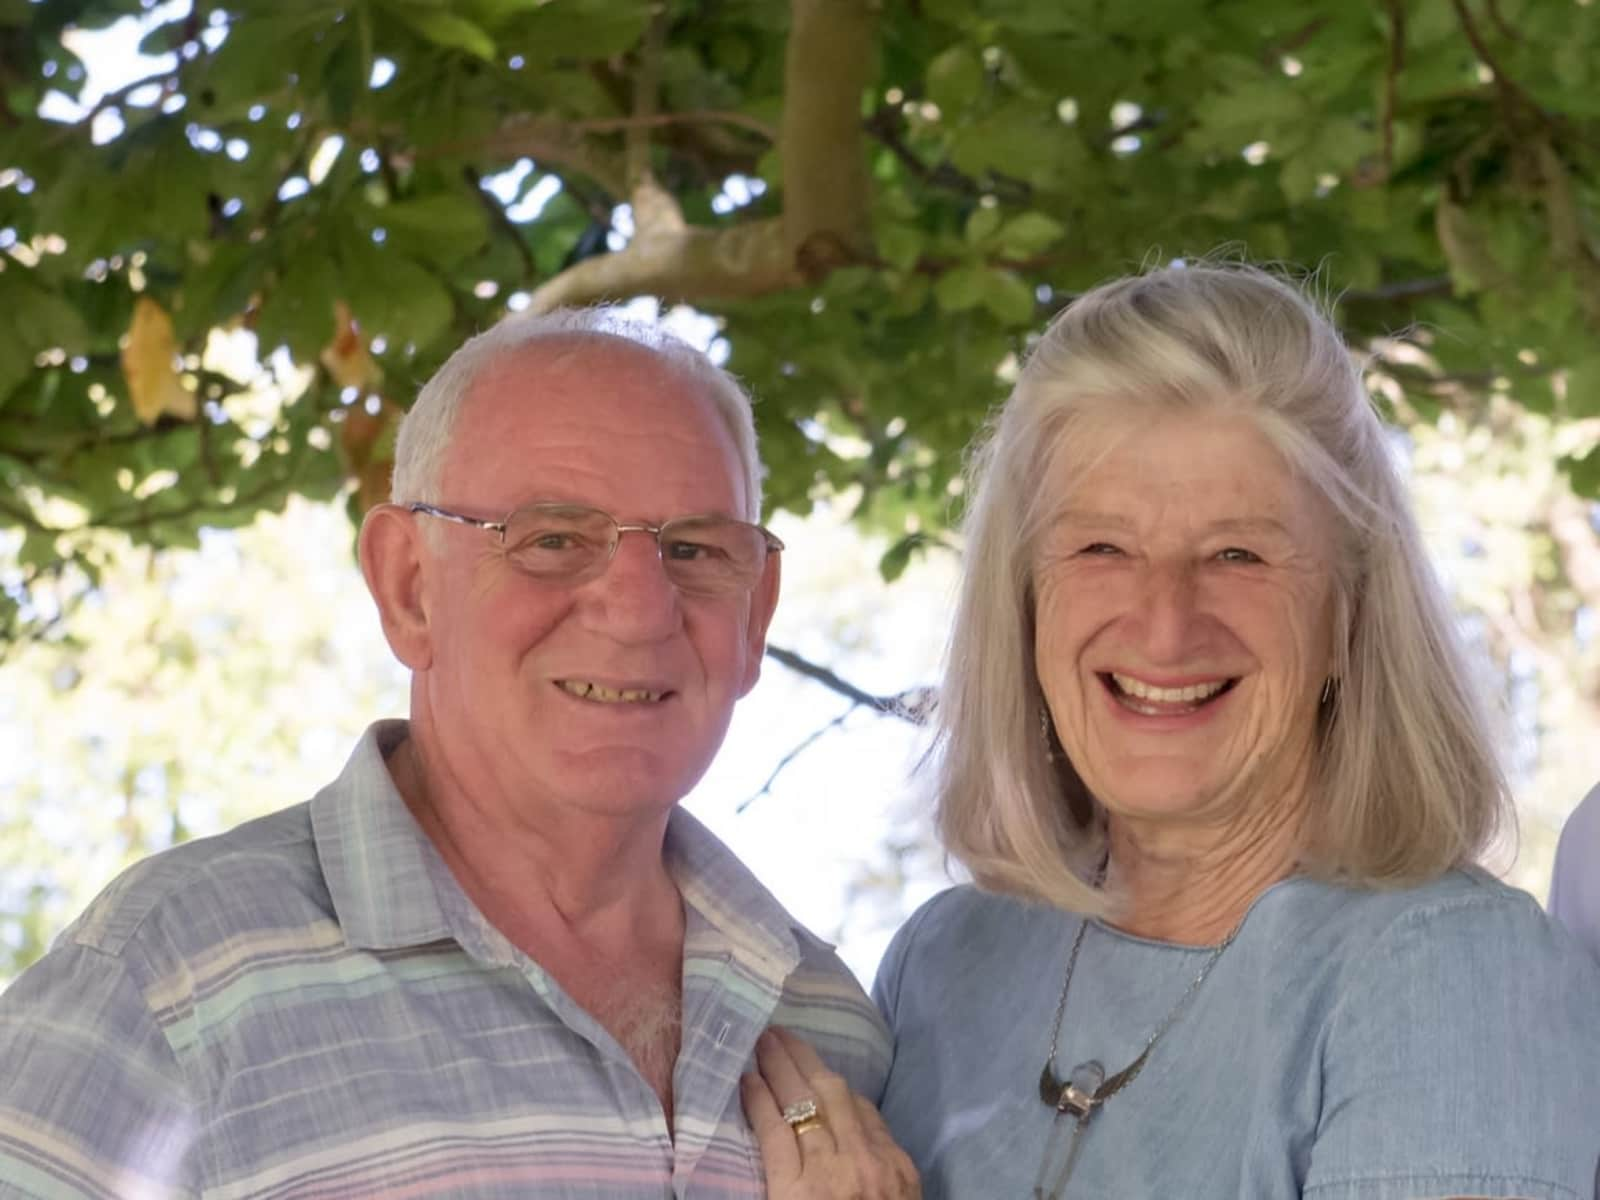 Mary & Alan from Tauranga, New Zealand